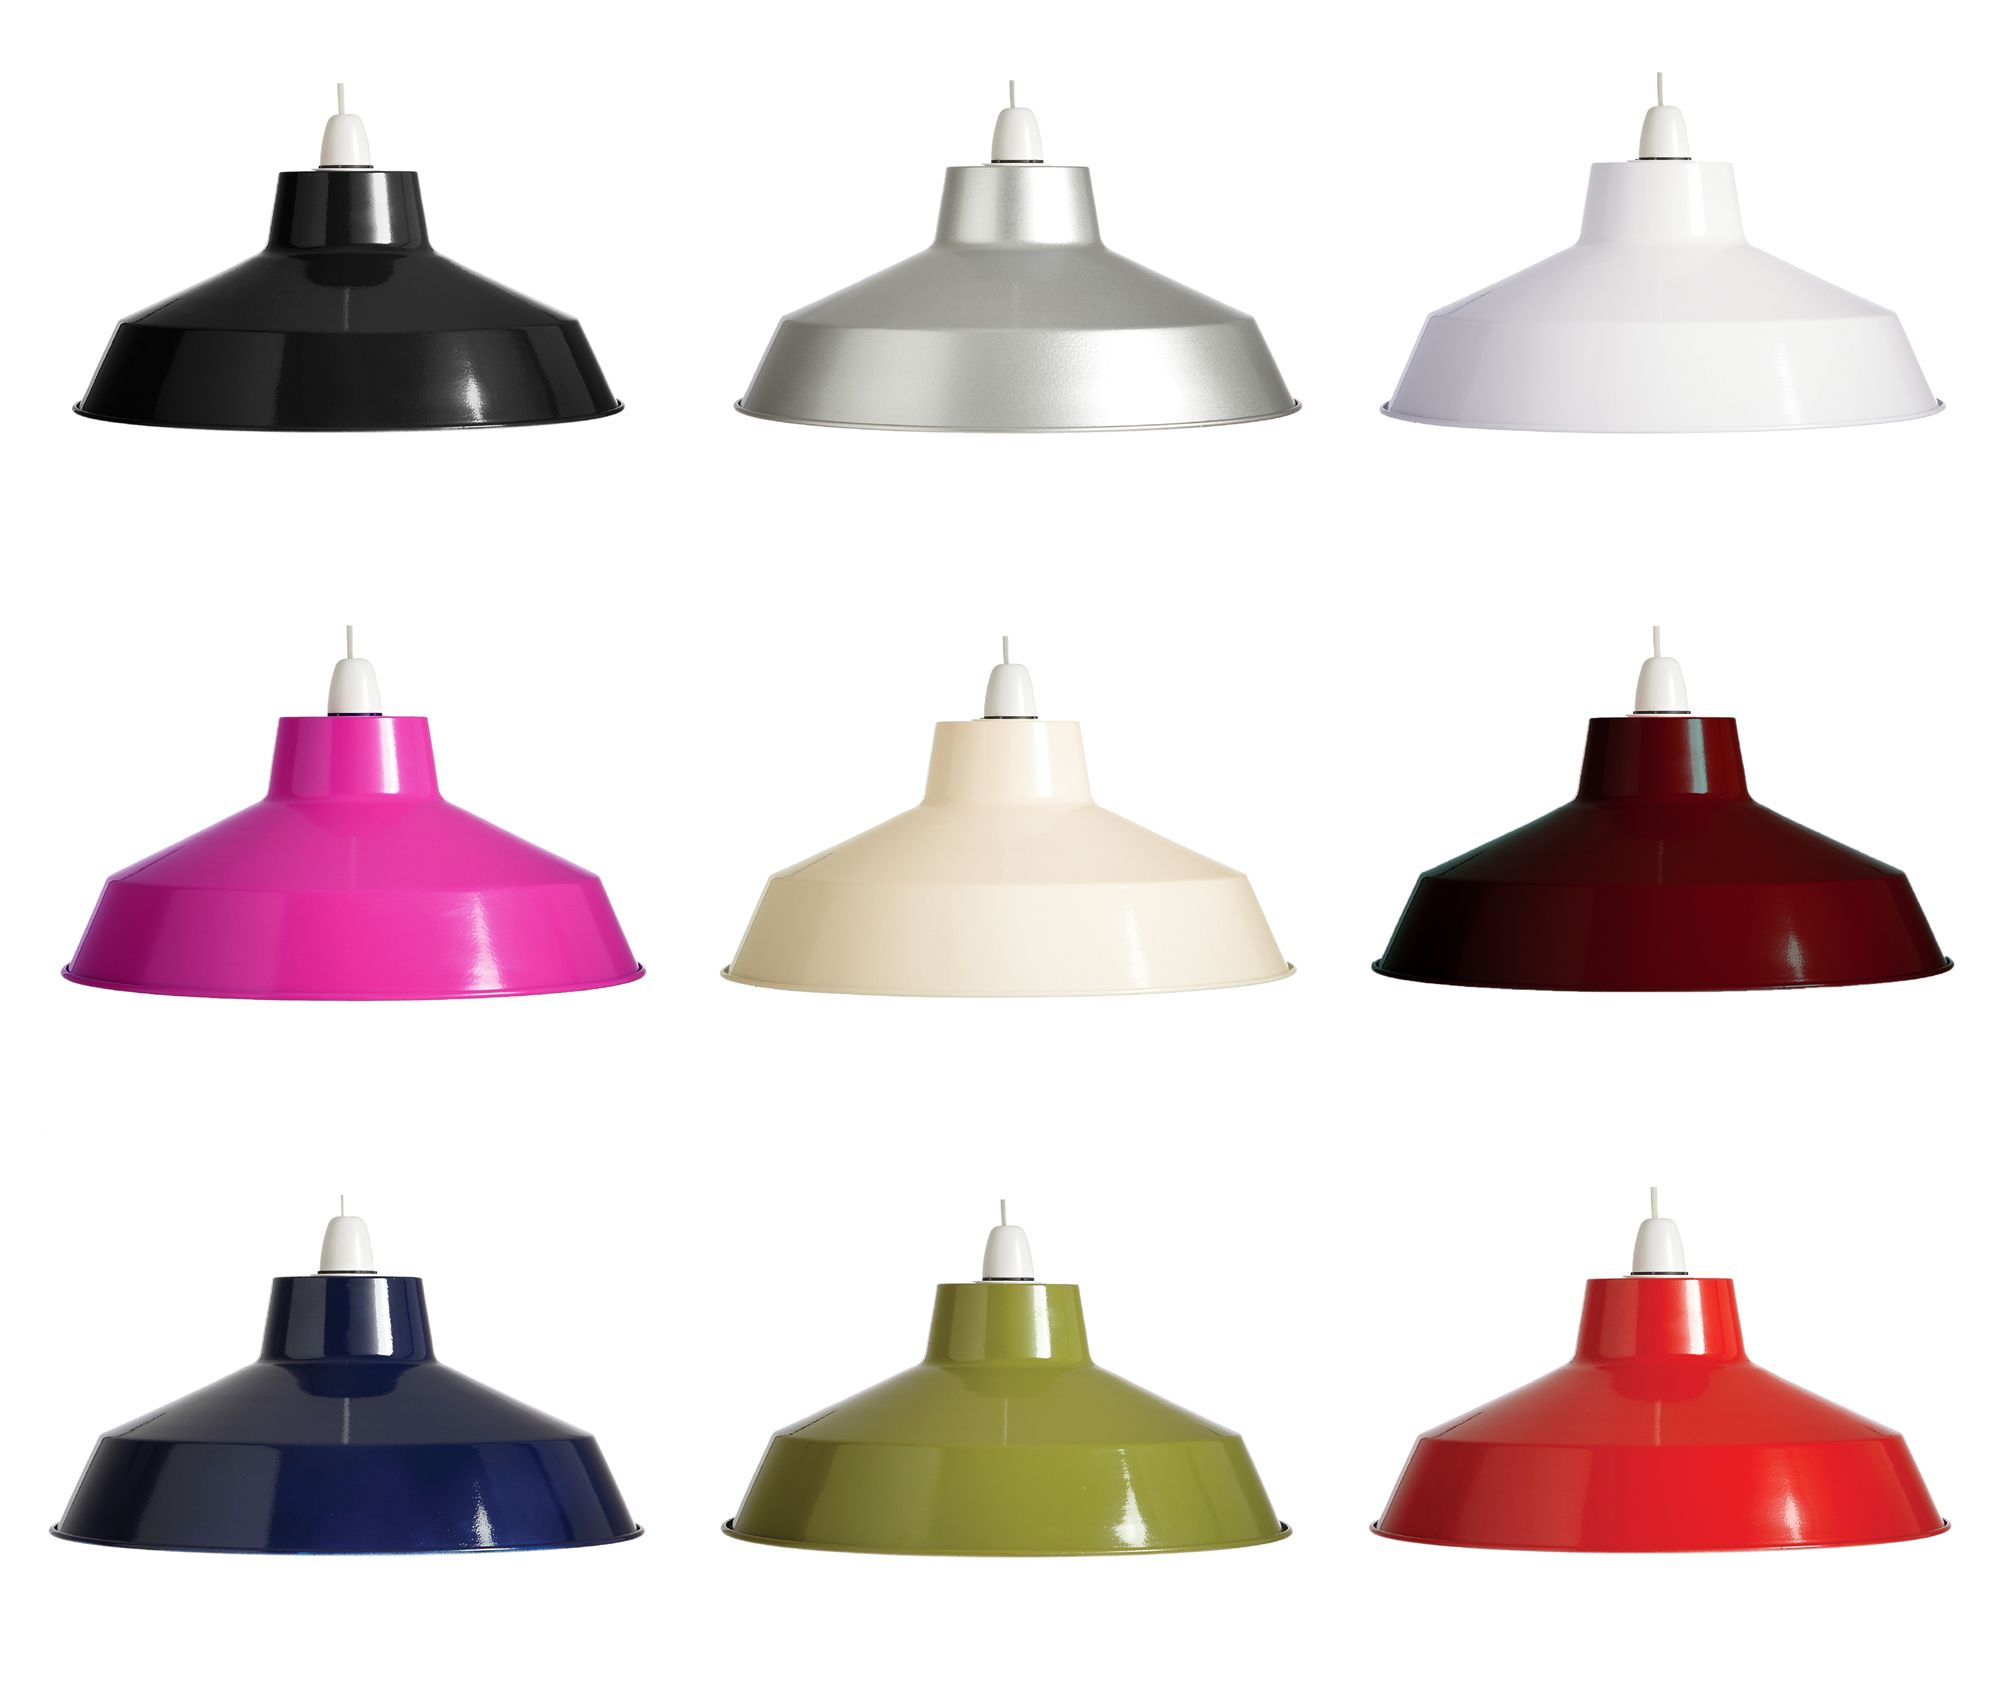 14 retro metal coolie lampshade ceiling light pendant shade fitting lampshades aloadofball Gallery